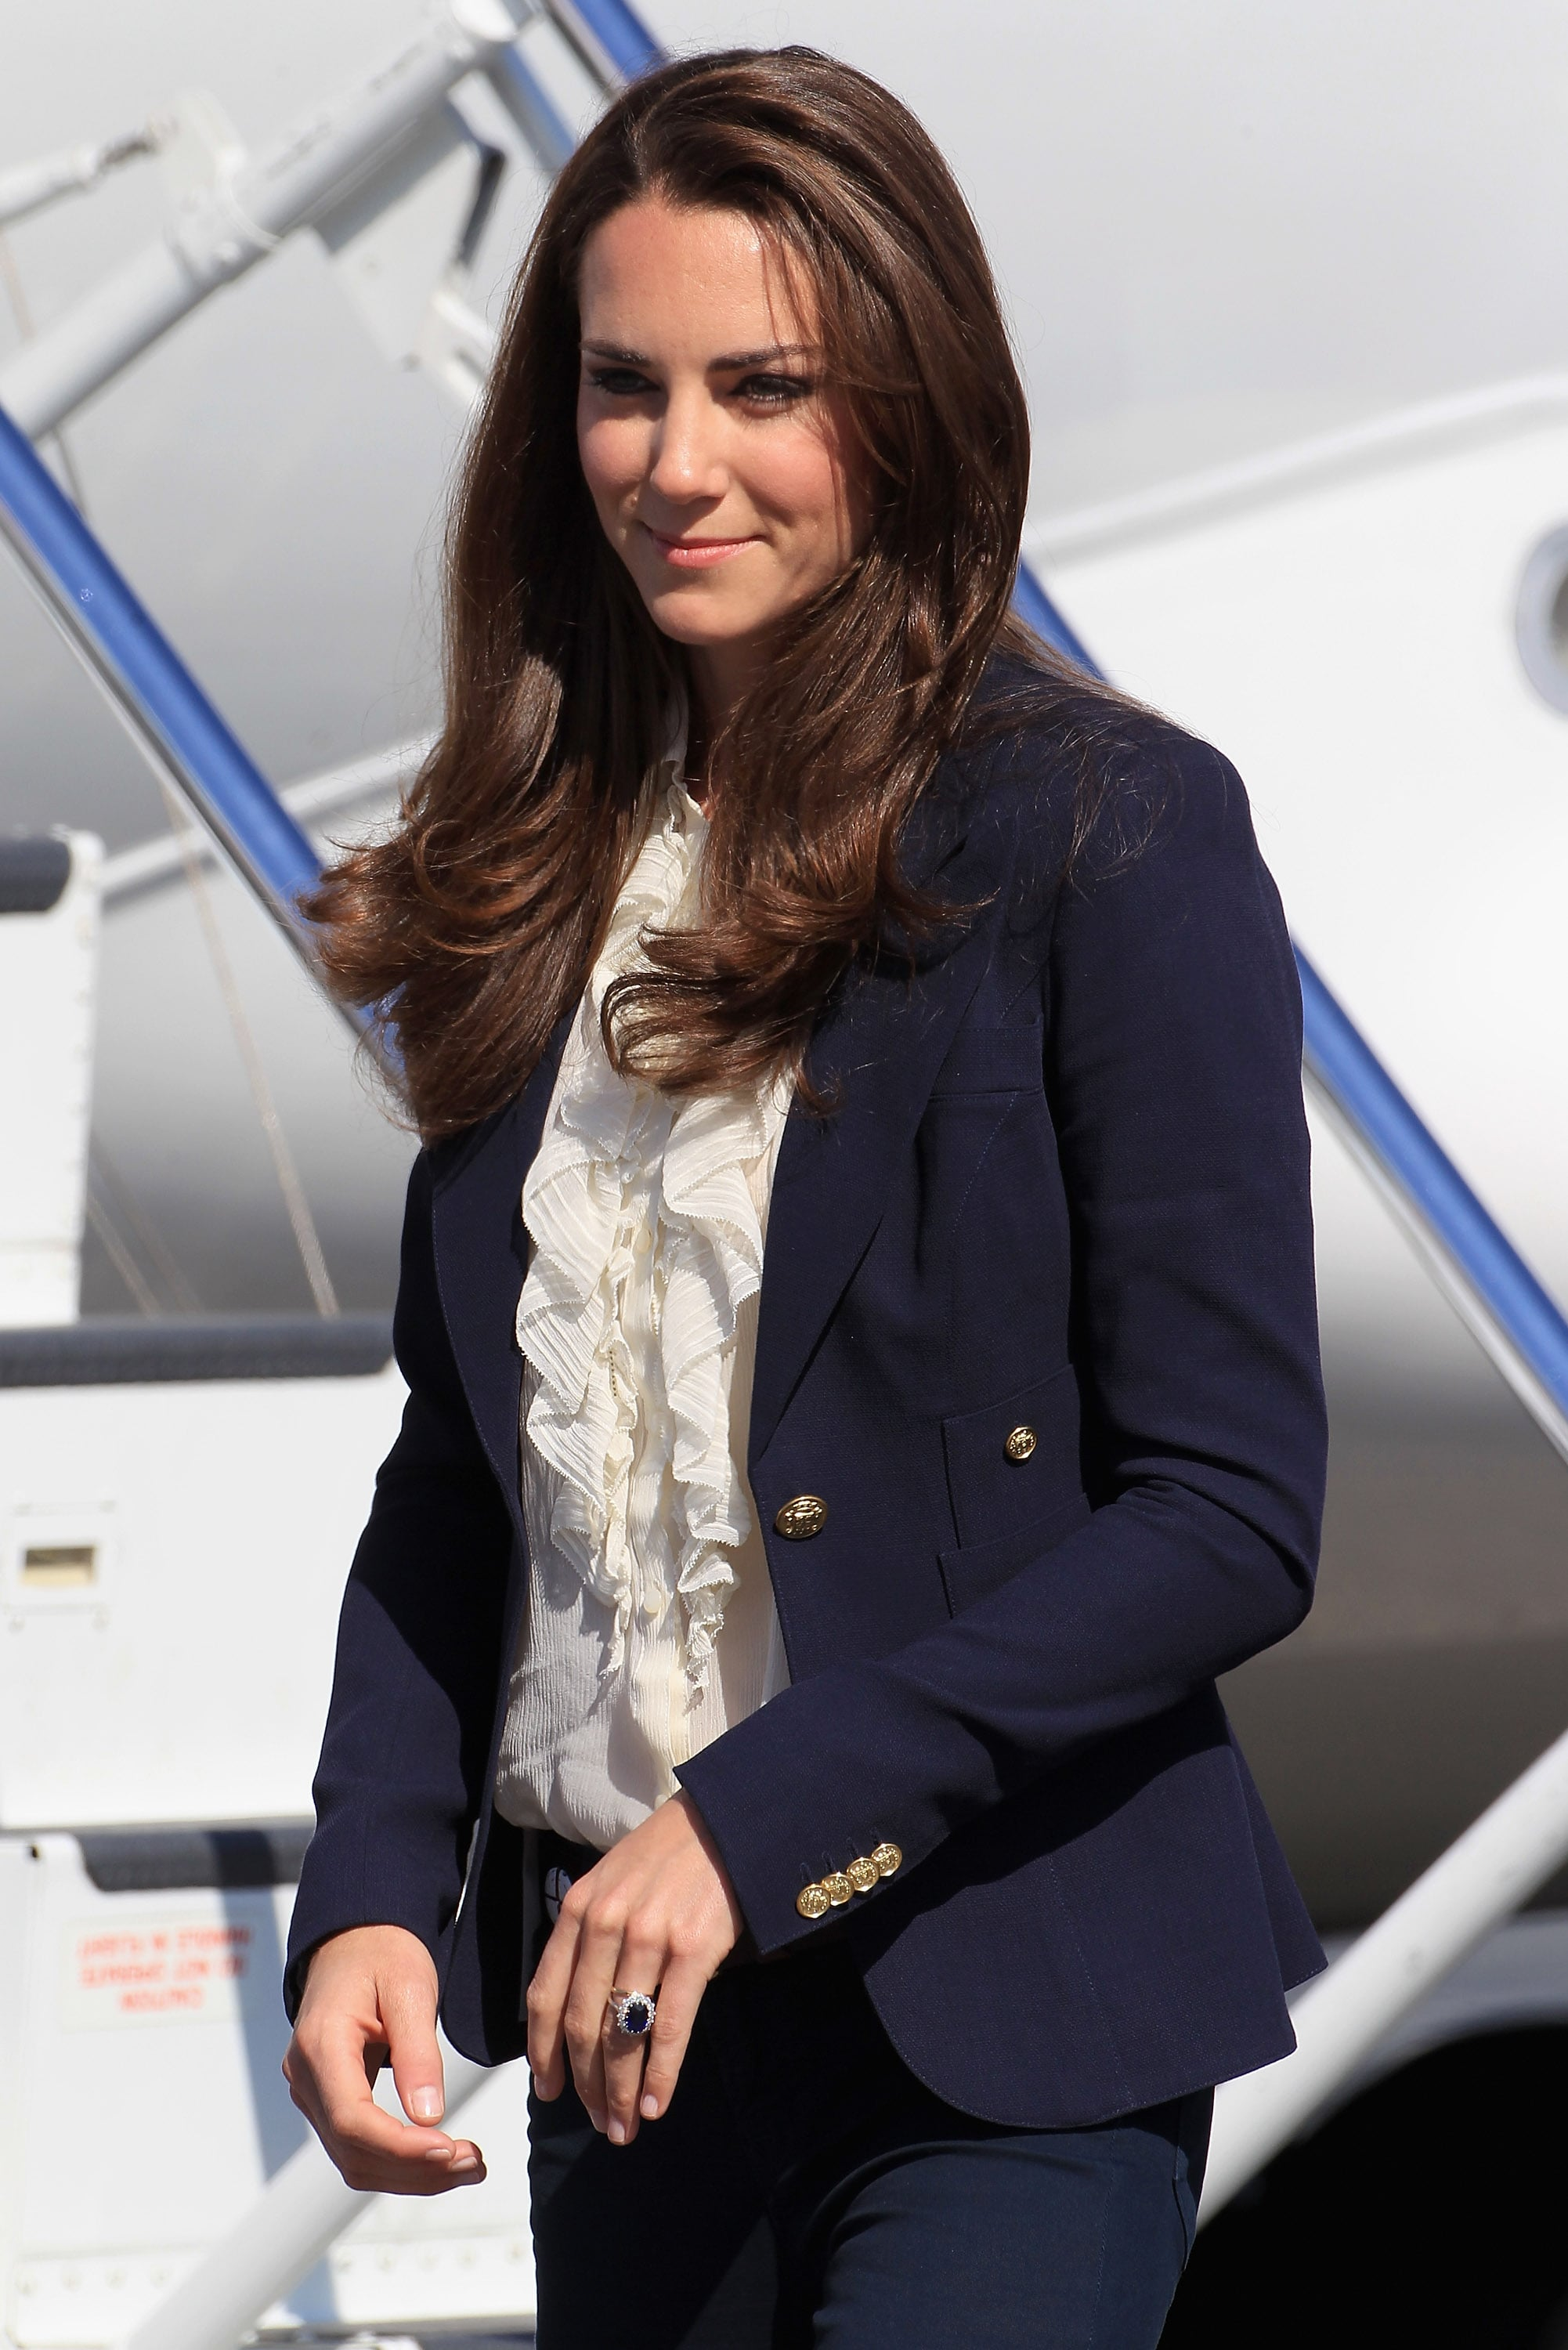 Pictures Of Prince William And Kate Middleton Wearing